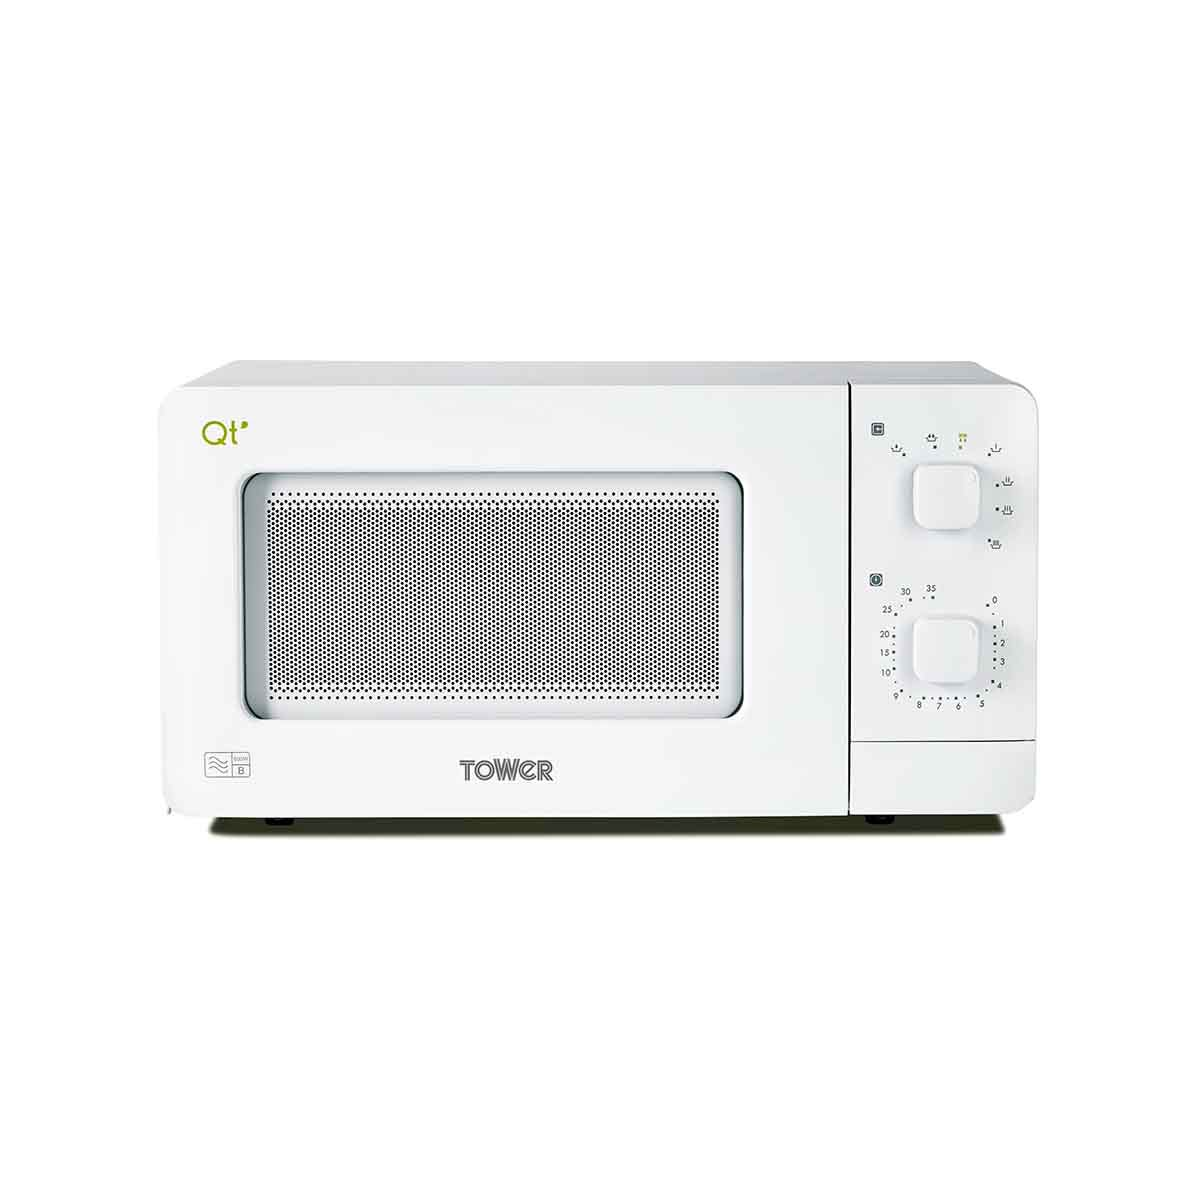 Tower QT1T 600W 14L Manual Control Microwave Oven - White